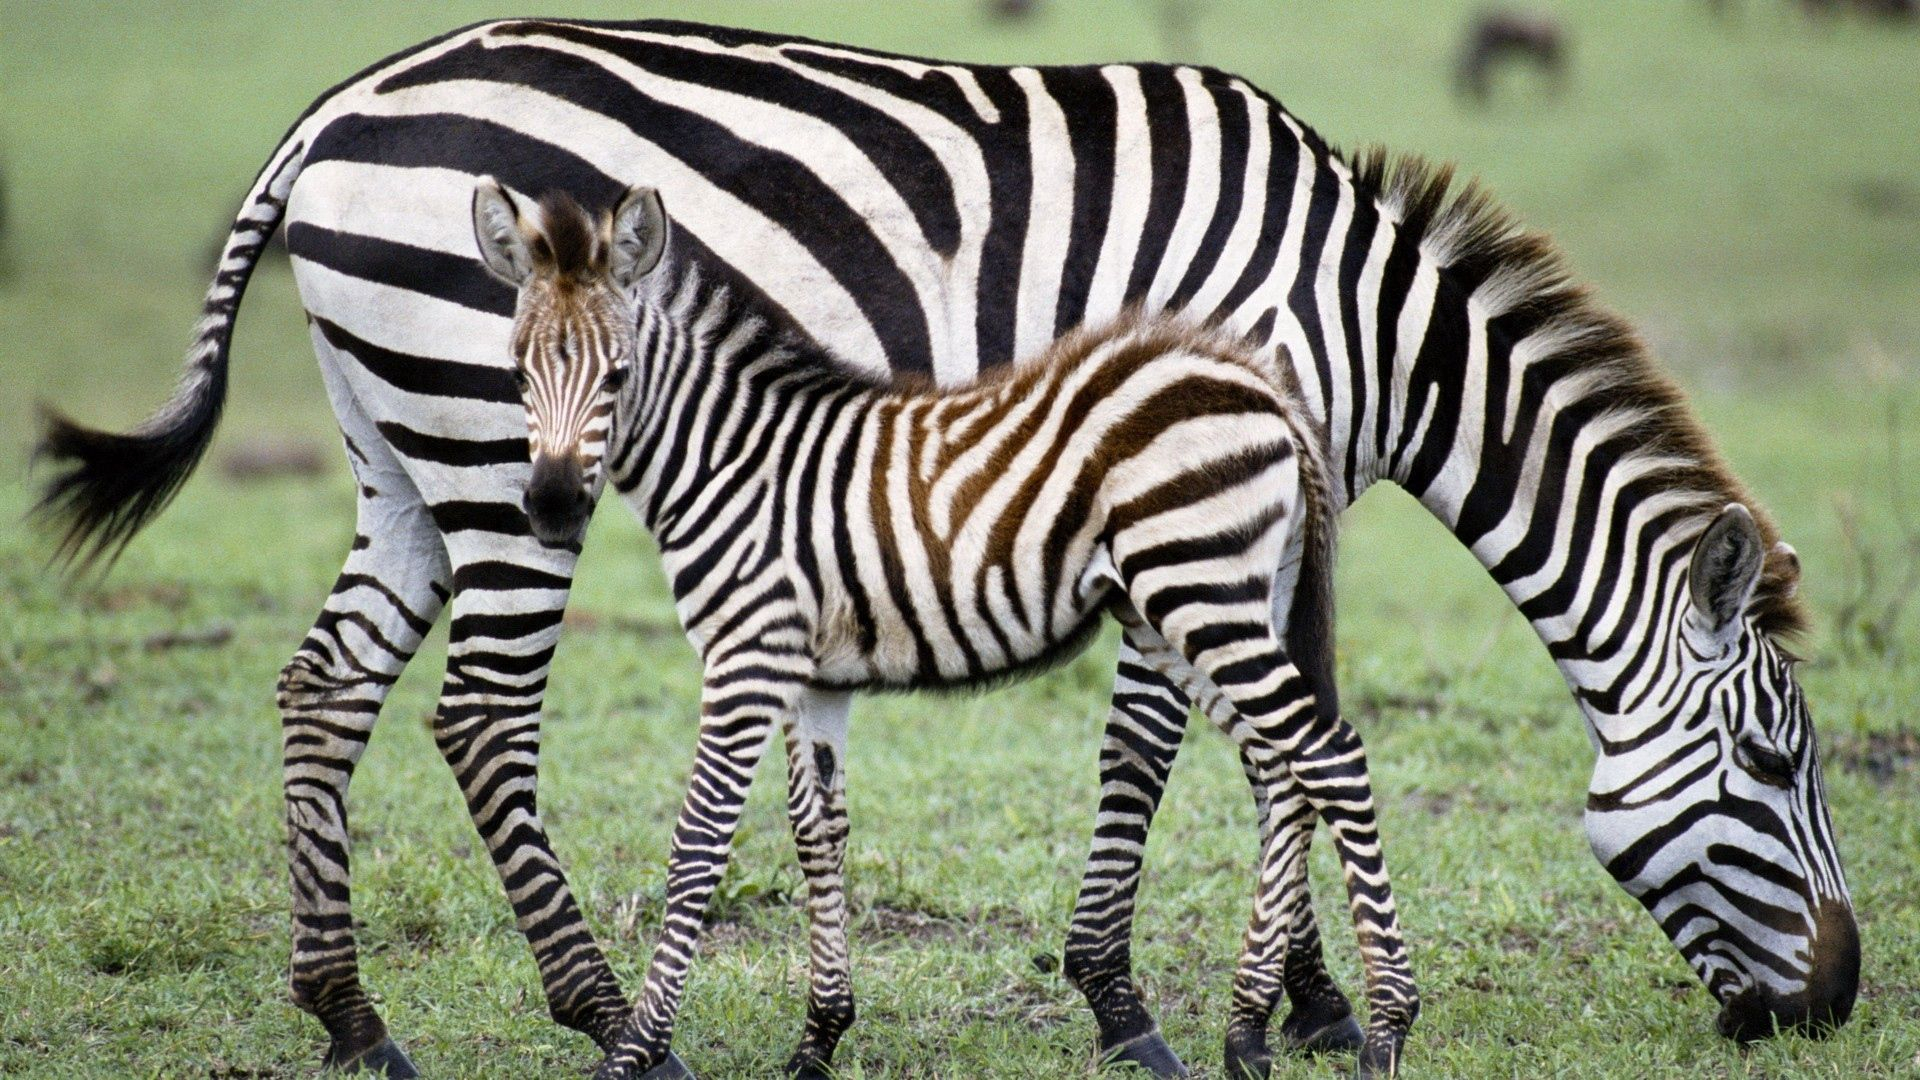 148989 download wallpaper Animals, Zebra, Young, Joey, Grass, Food screensavers and pictures for free